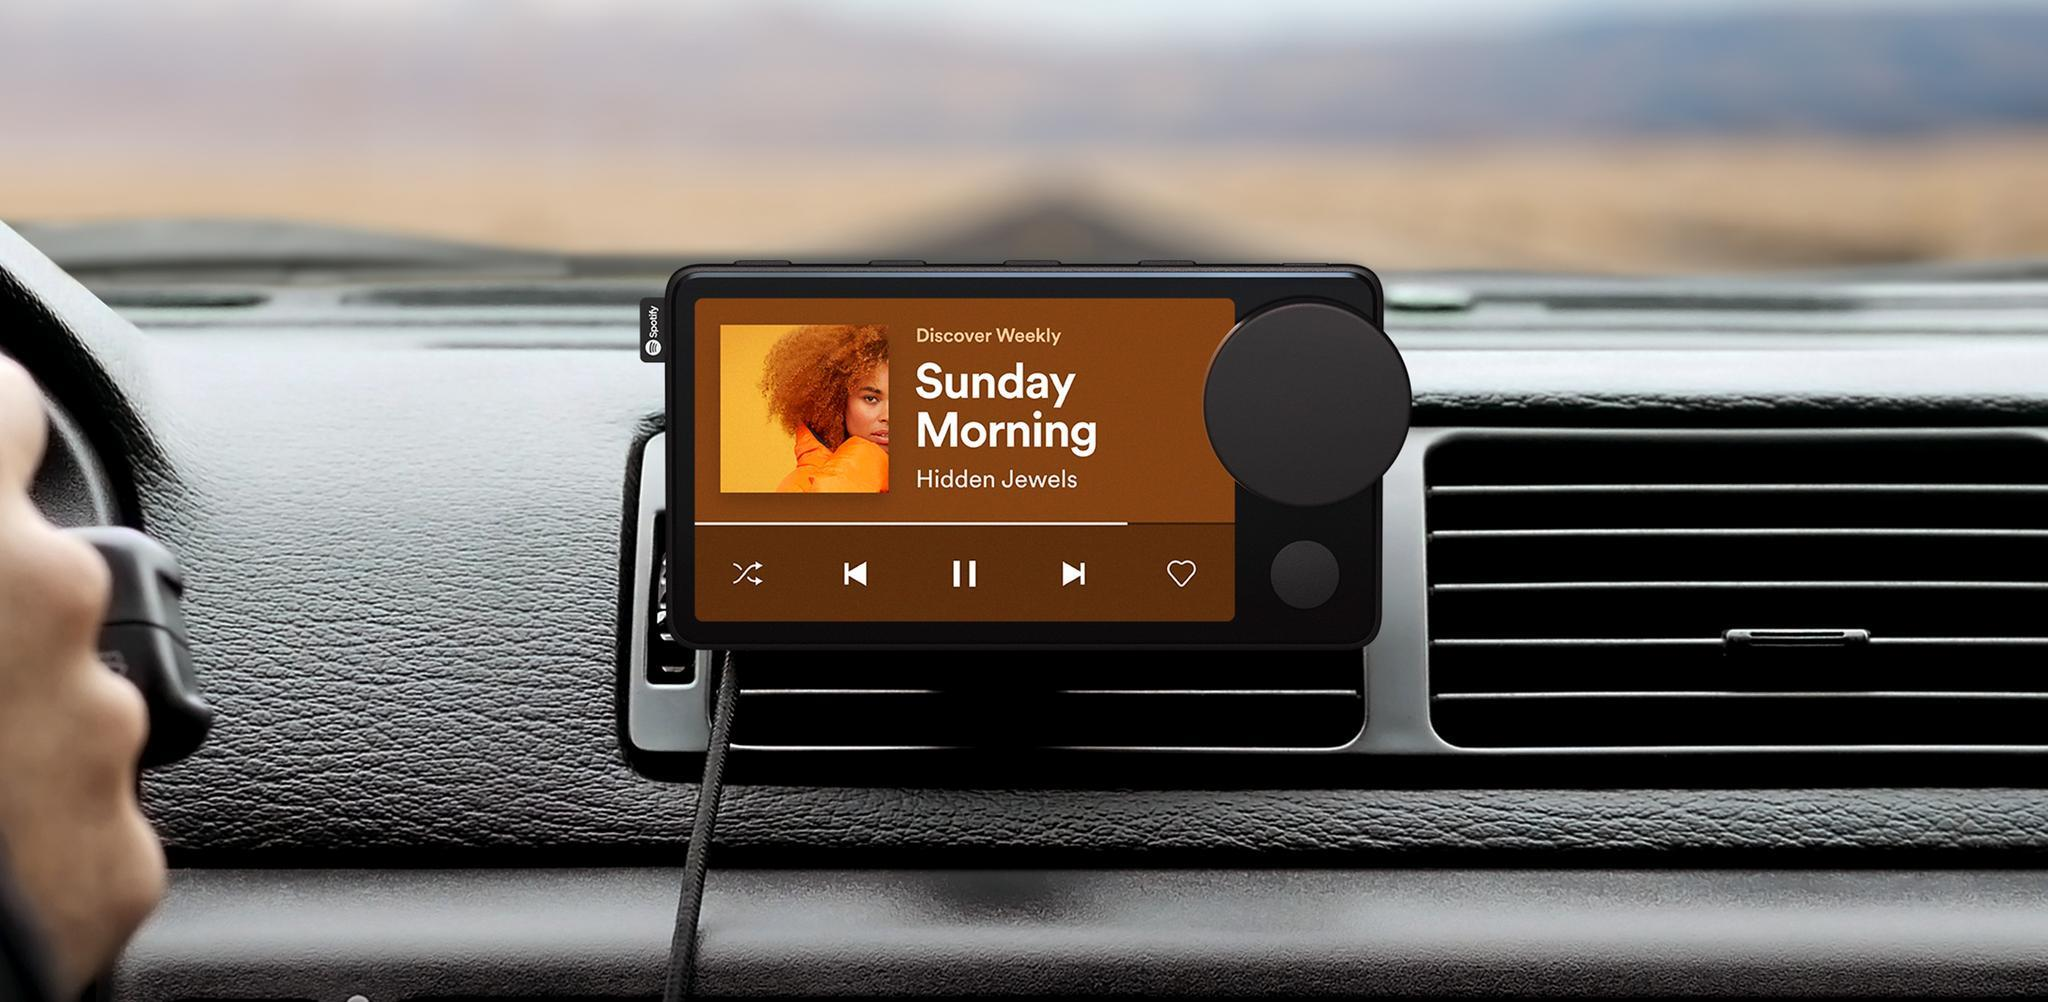 Spotify's Car Thing gadget